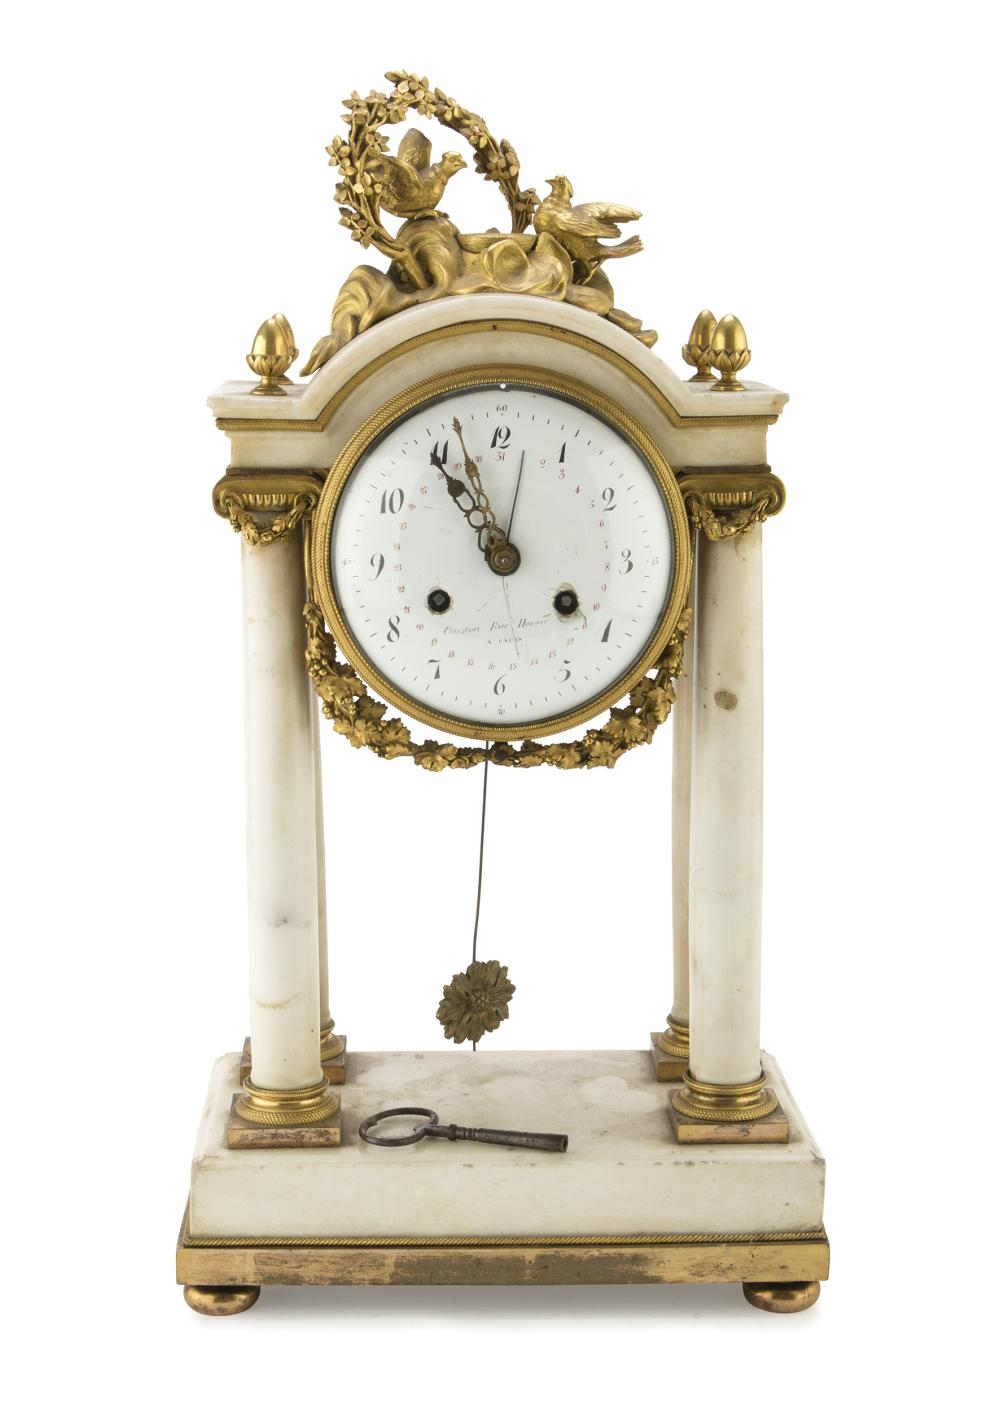 Lot 424: TEMPLE CLOCK IN WHITE MARBLE, FRANCE 19TH CENTURY